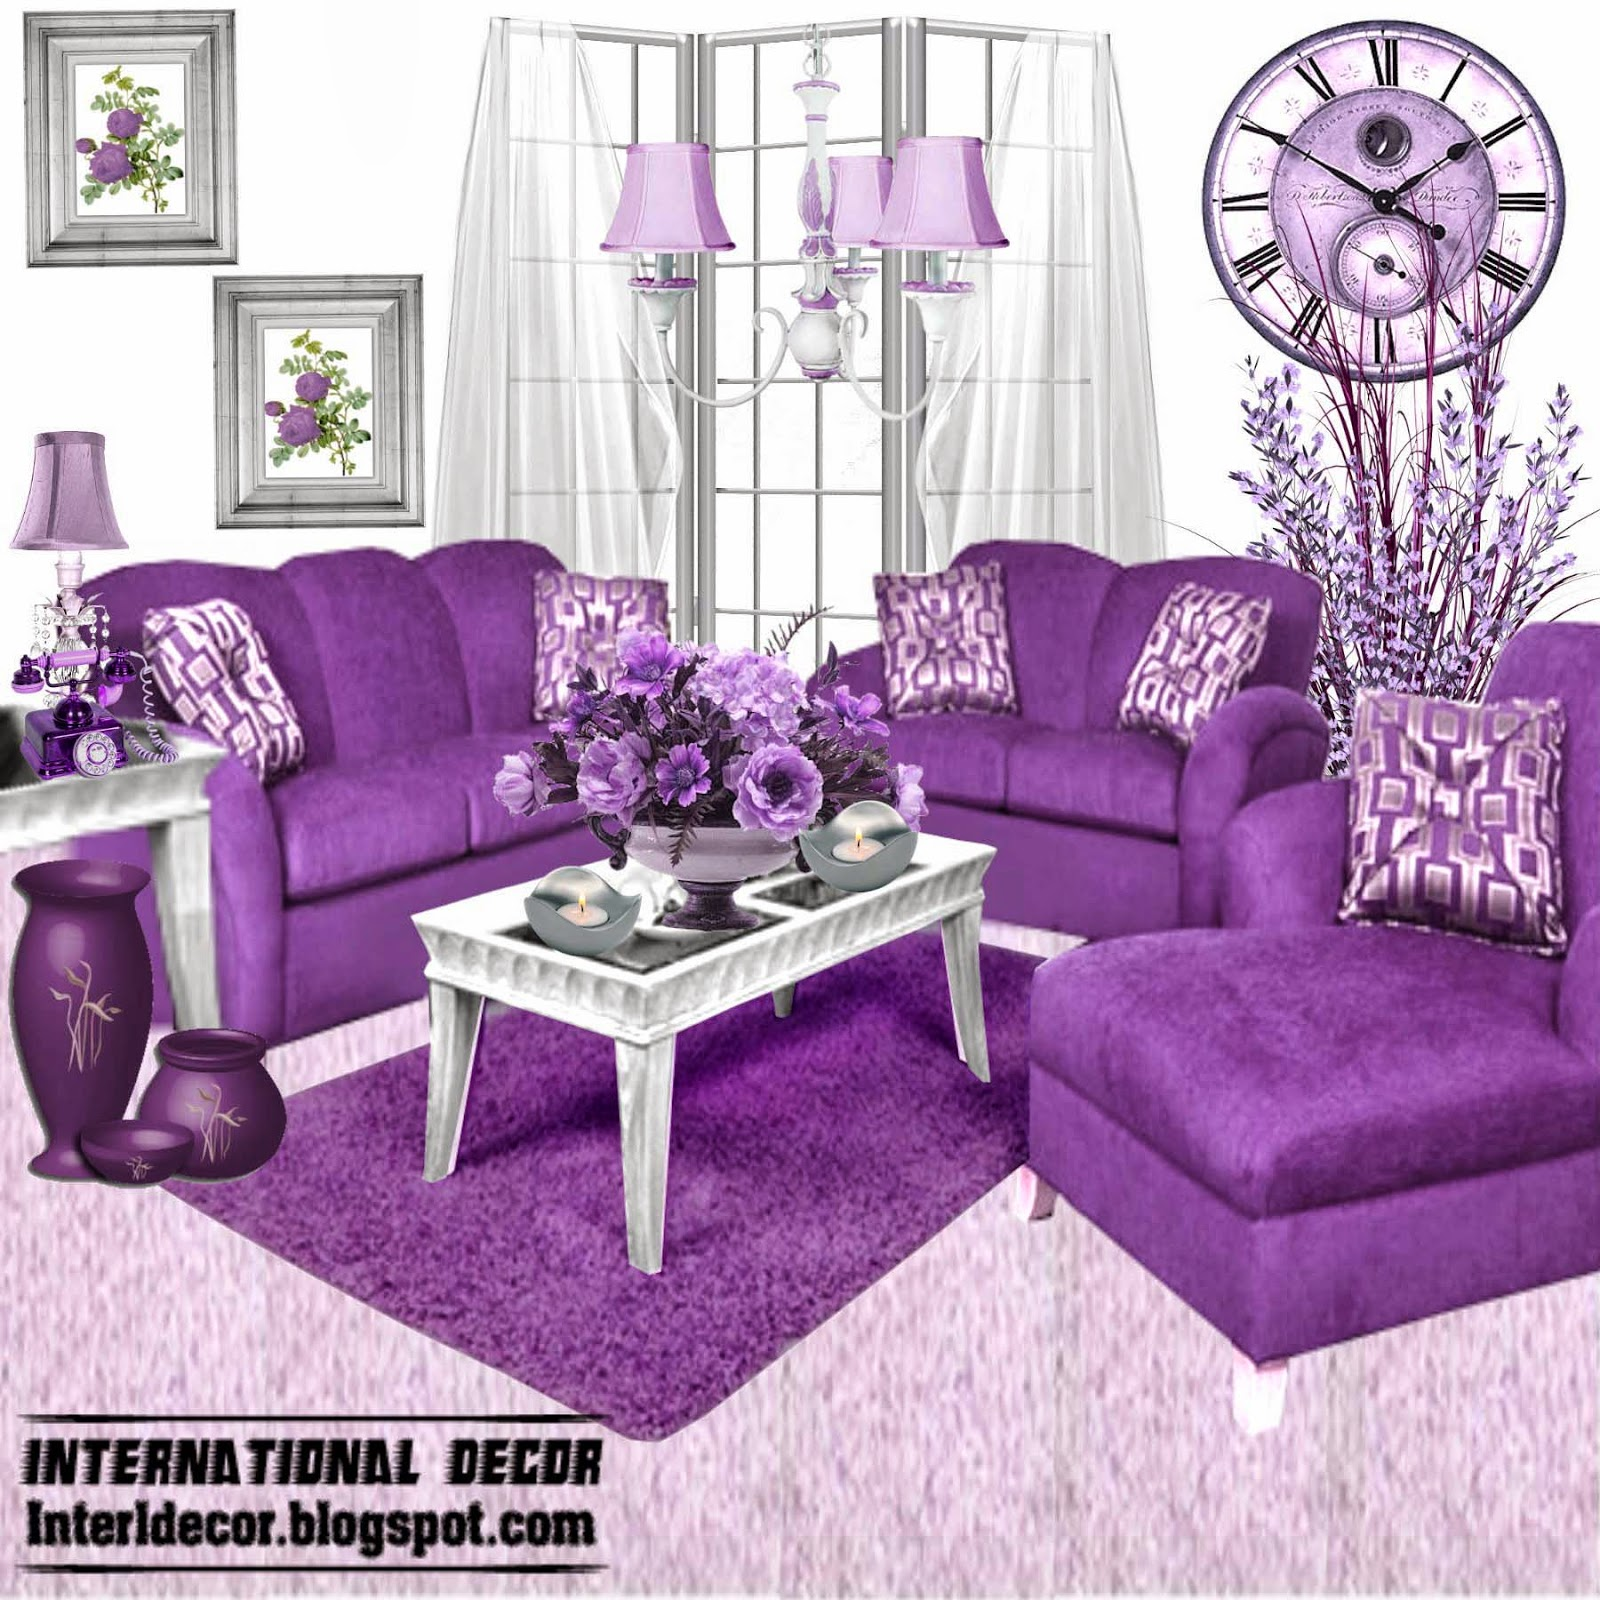 Purple furniture for the home pinterest purple for Living room furniture collections